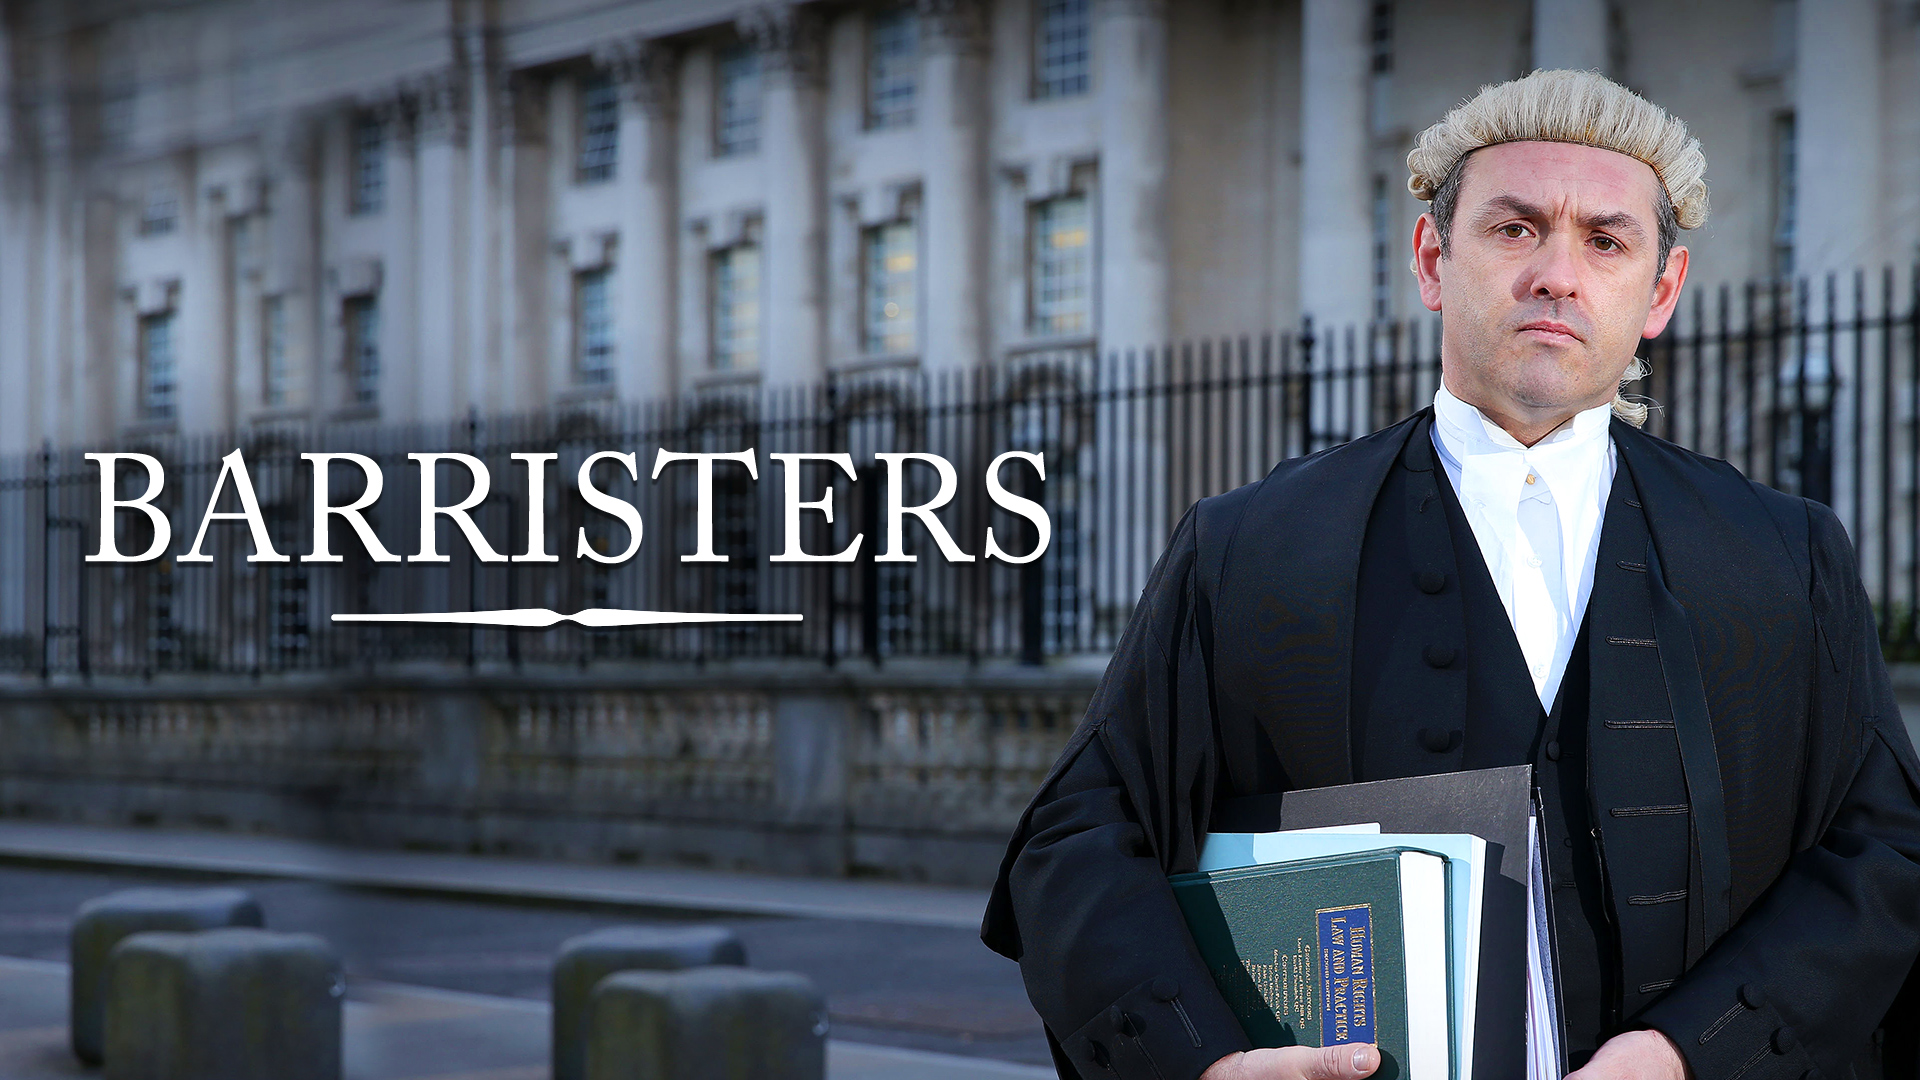 Barristers - Series 1